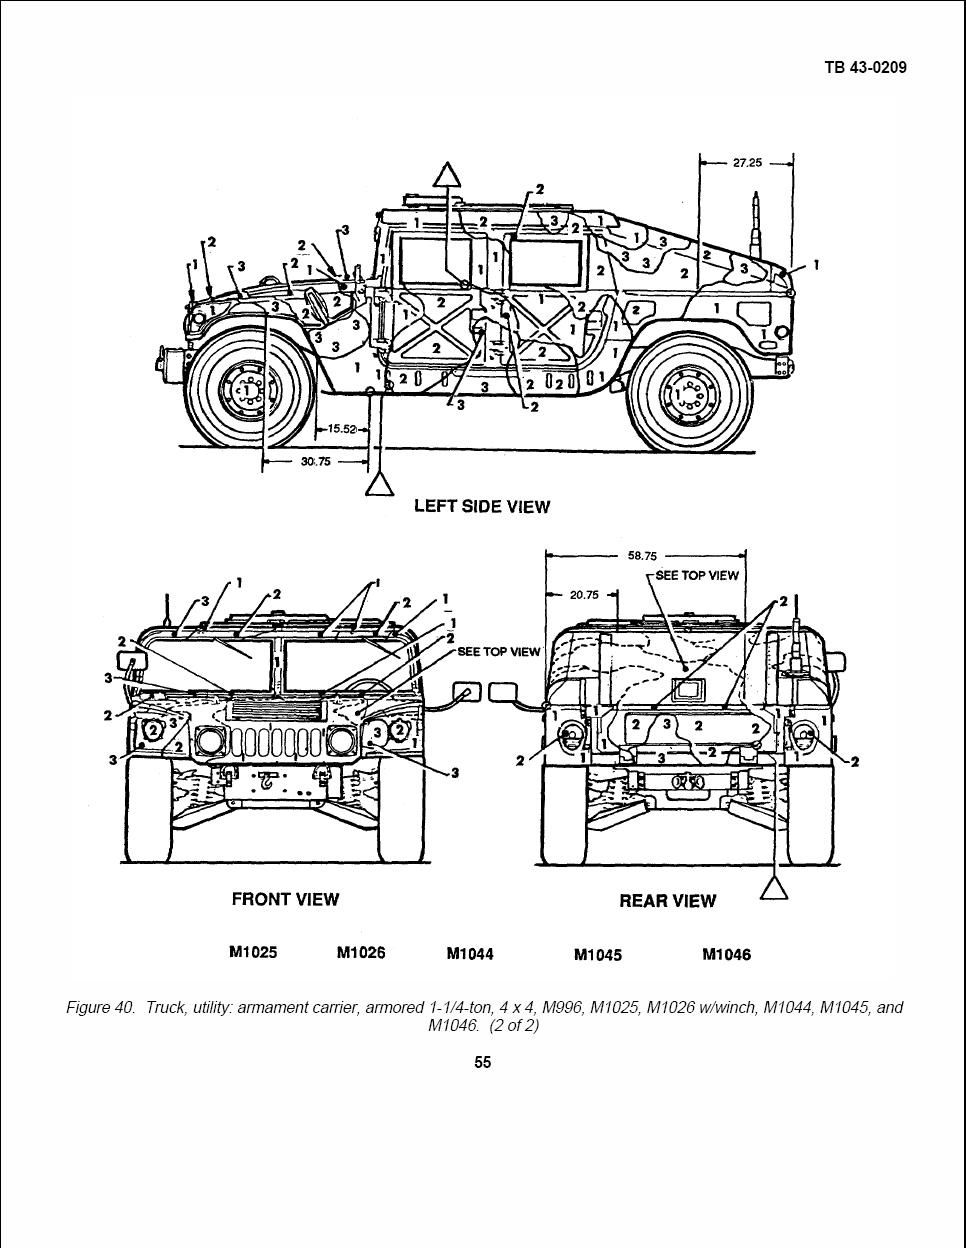 Hmmwv Top Down Diagram Diy Enthusiasts Wiring Diagrams Schematic Humvee Humvee2 966 1 248 Pinterest Hummer Rh Com Ppt Variants